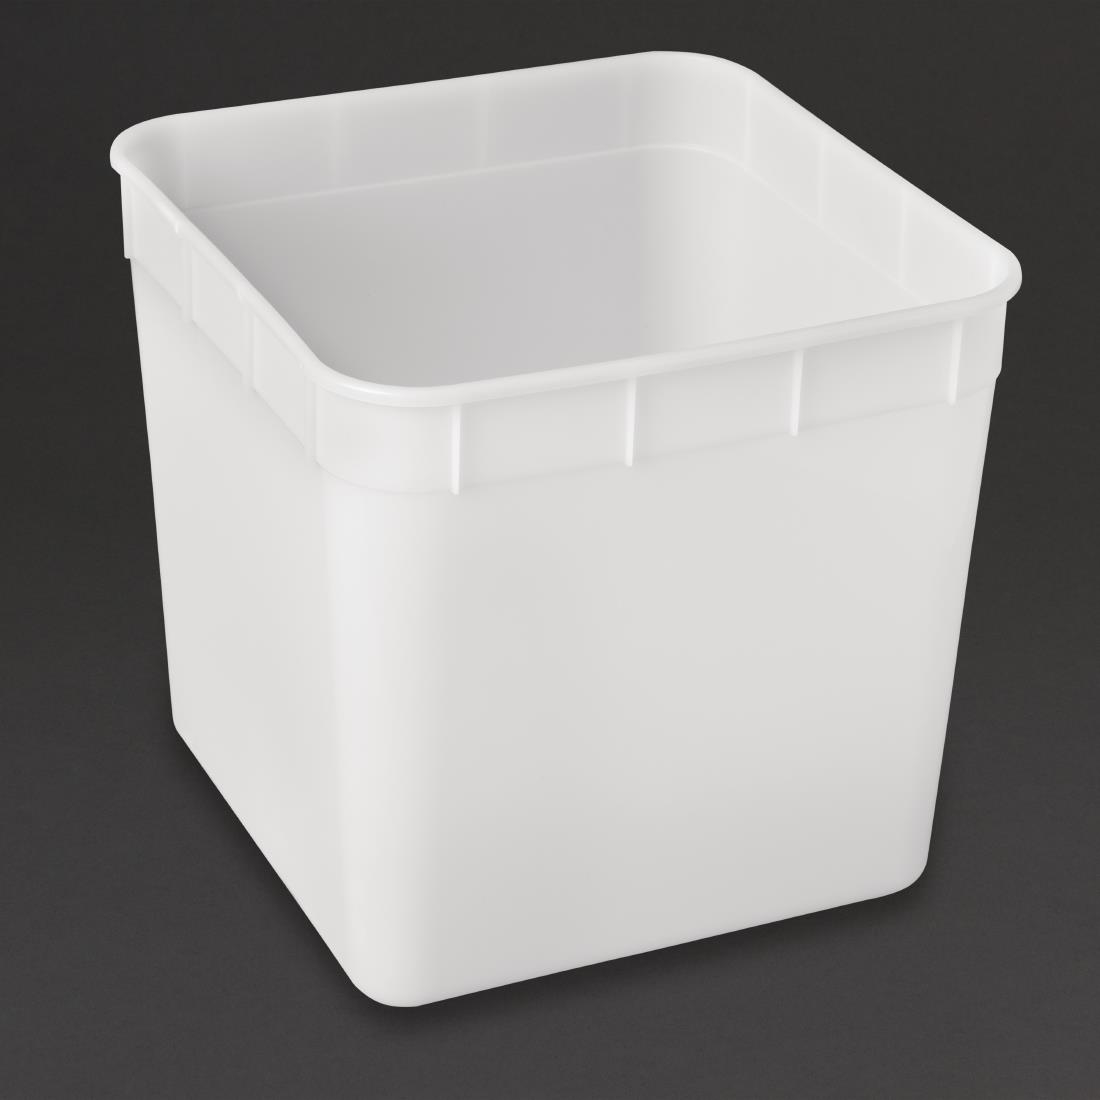 Ice Cream Containers 10Ltr Pack of 10 DA572 Buy Online at Nisbets